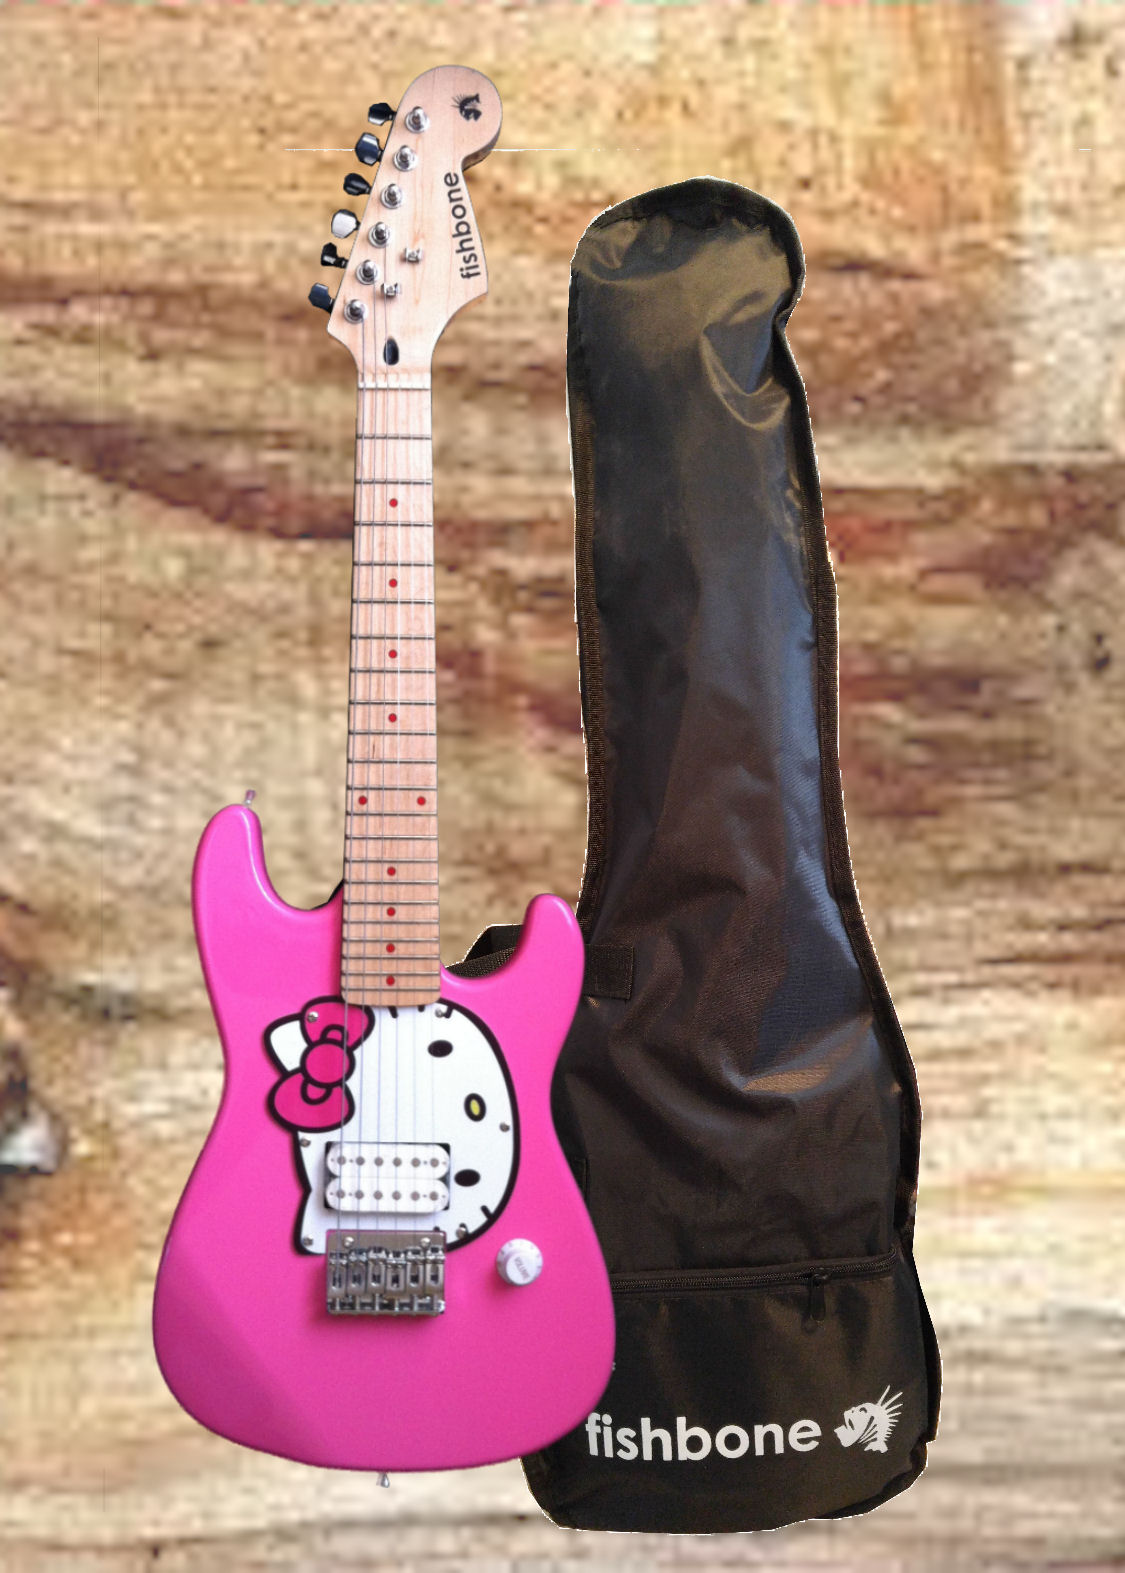 fishbone HELLO KITTY-PINK 3/4 Size Travel Guitar